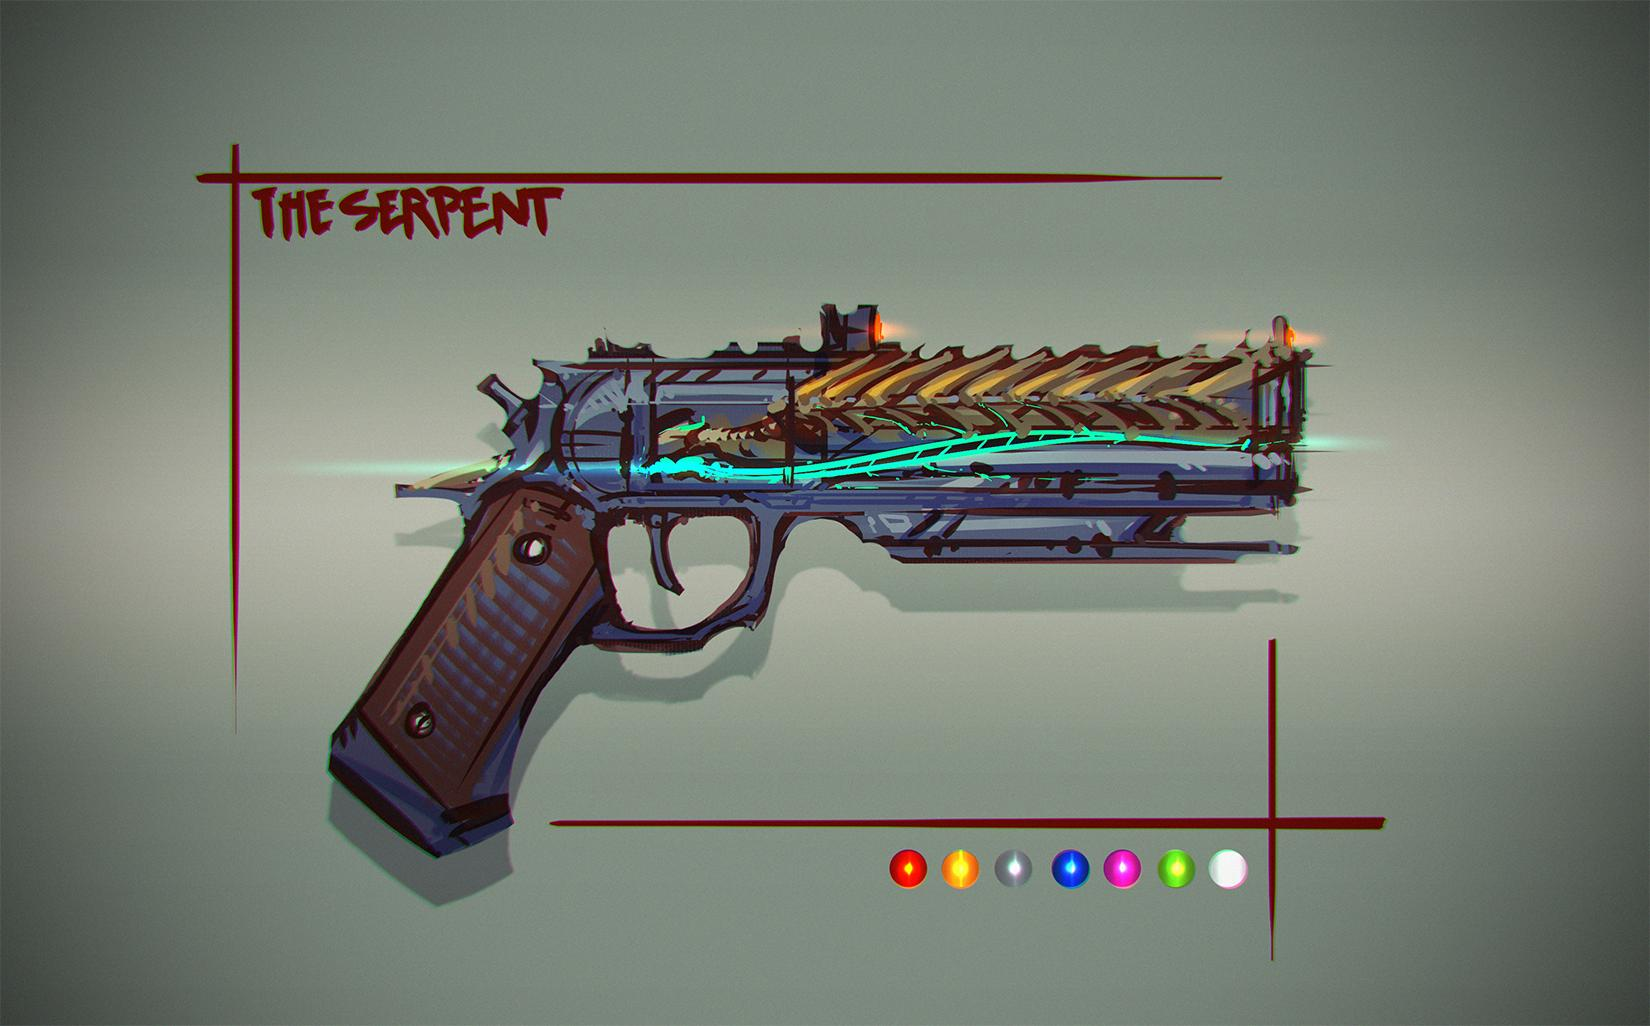 It s called the serpent and he based it off this design by bing0ne